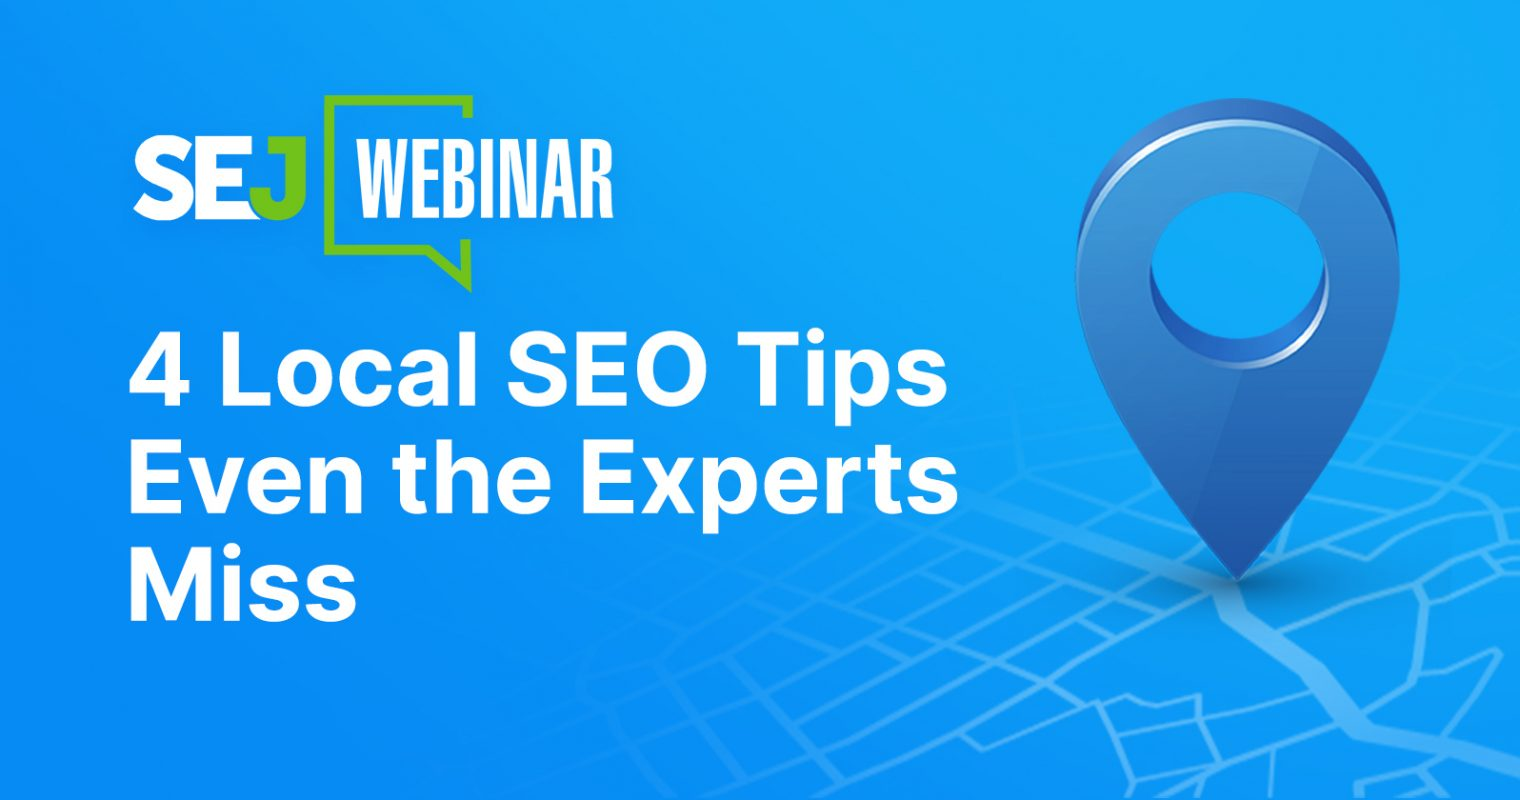 4 Local SEO Tips Even the Experts Miss [Webinar]